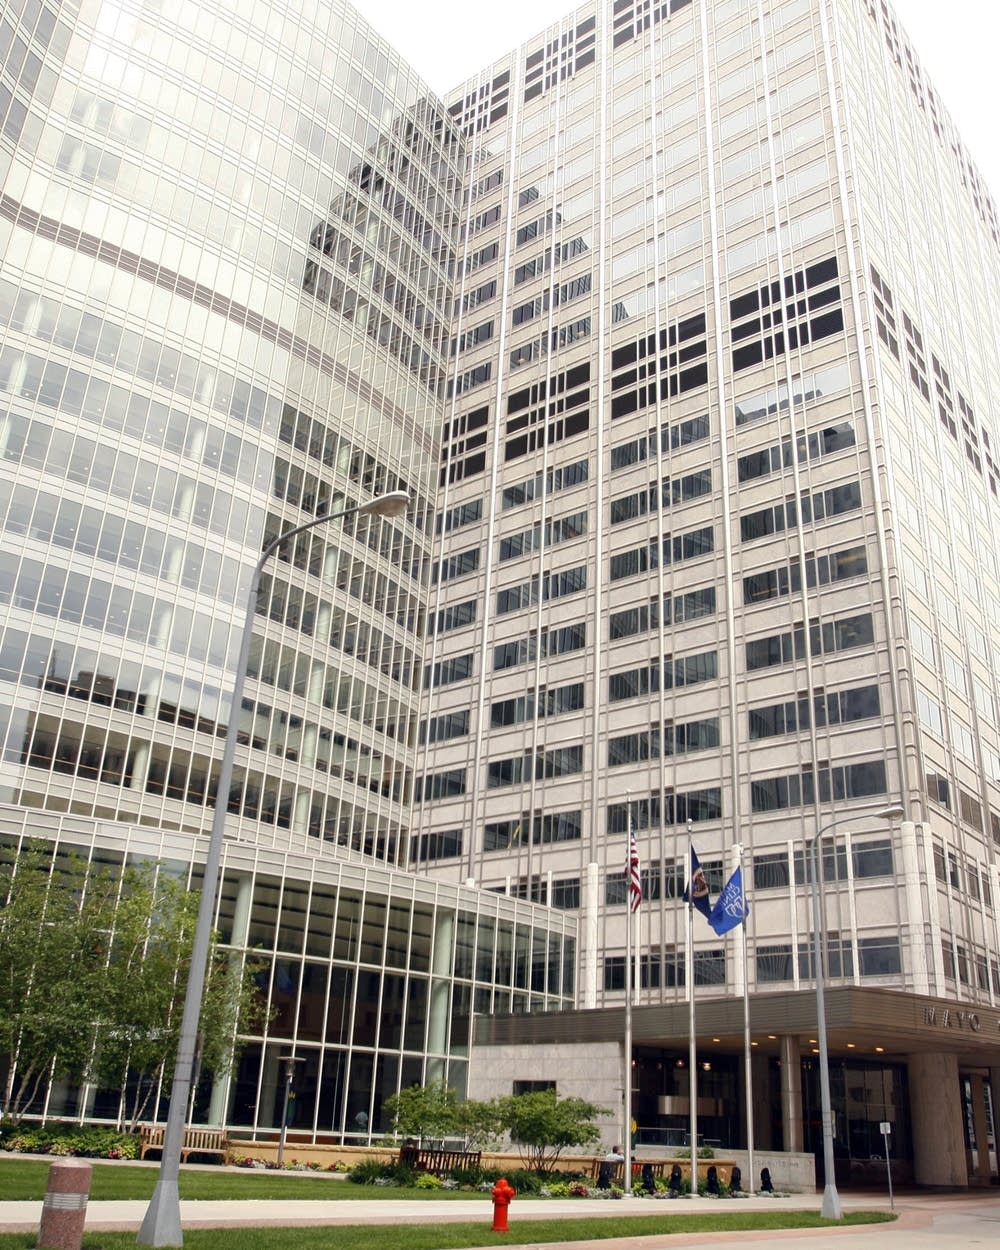 Mayo Clinic is tops in magazine's hospital rankings | MPR News